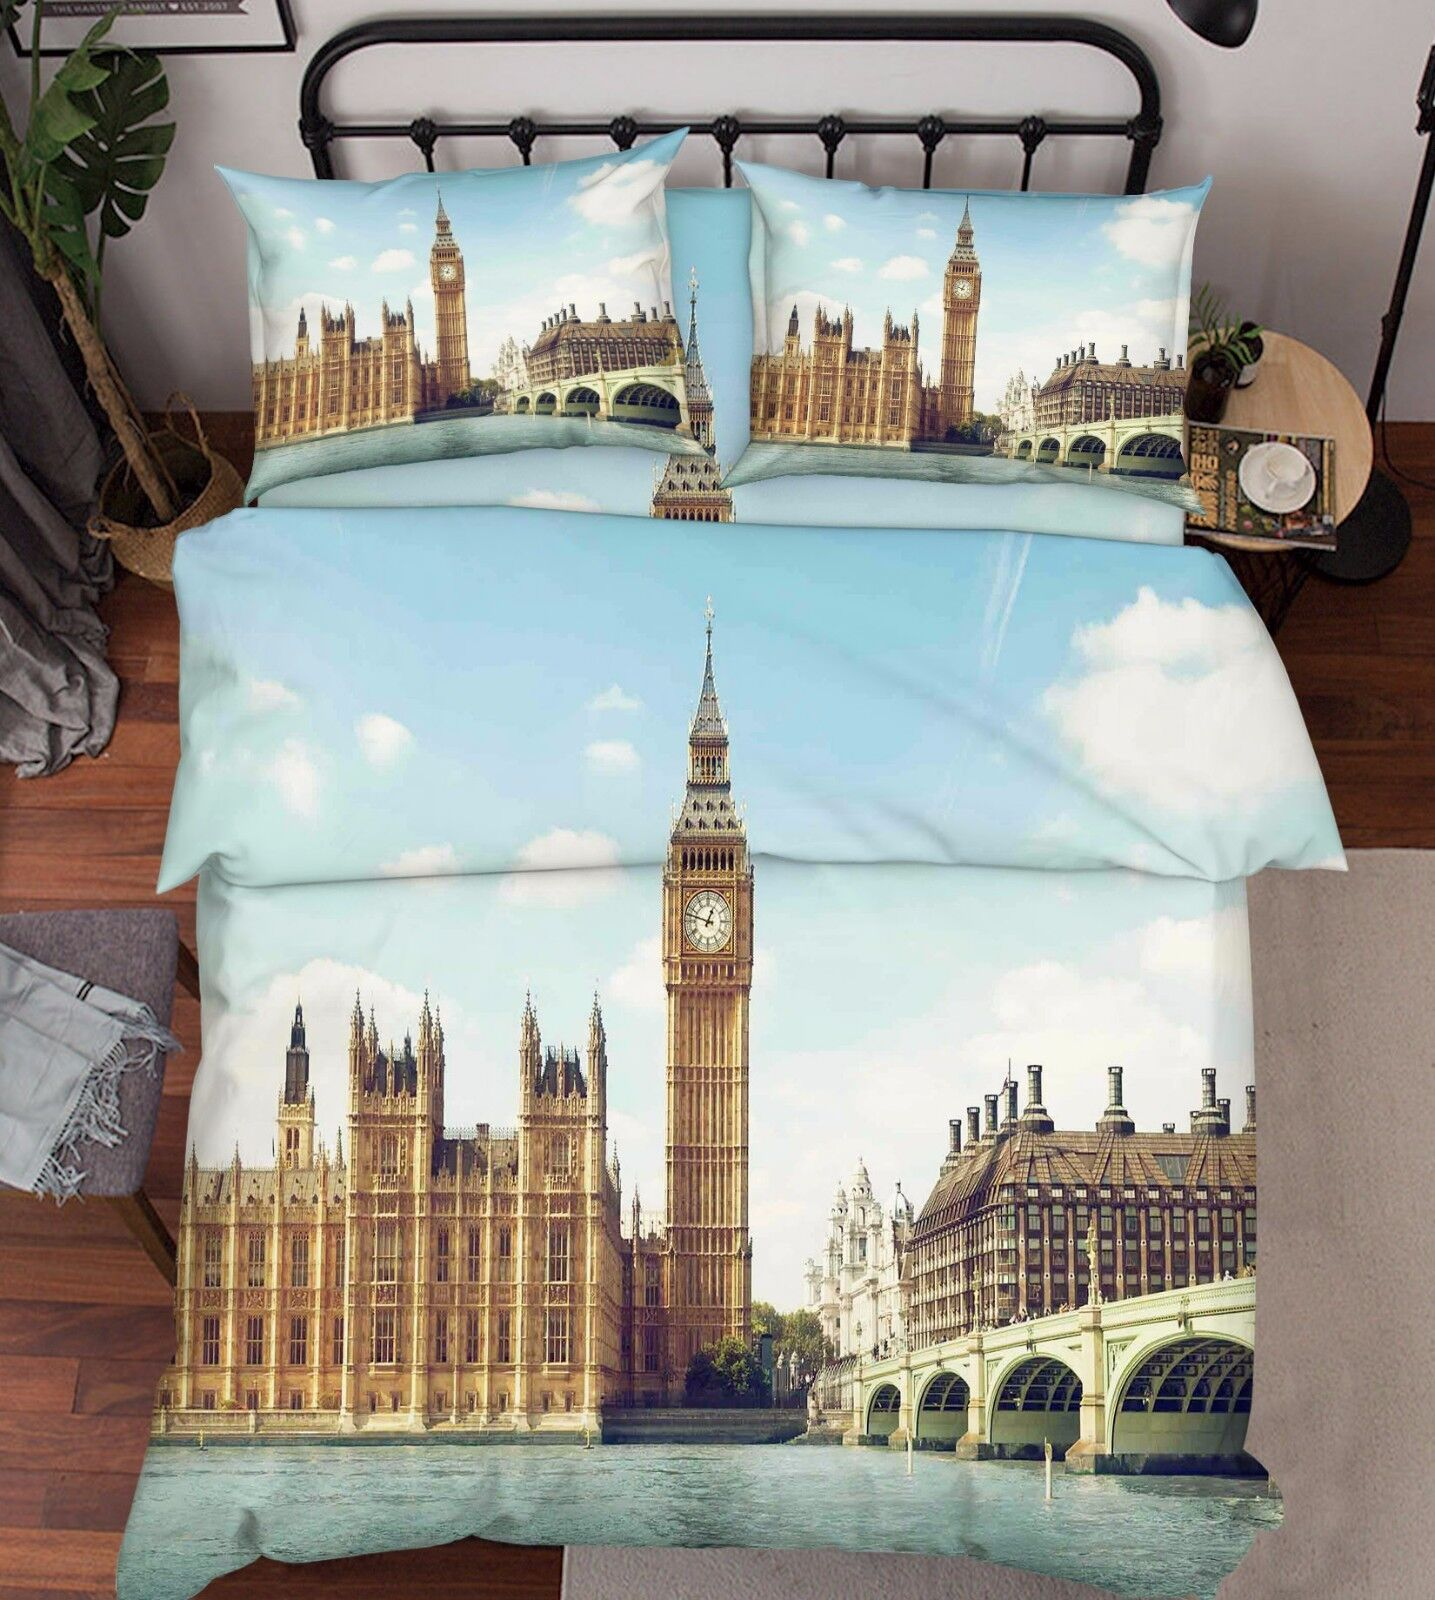 3D London View 2 Bed Pillowcases Quilt Duvet Cover Set Single Queen King Size AU